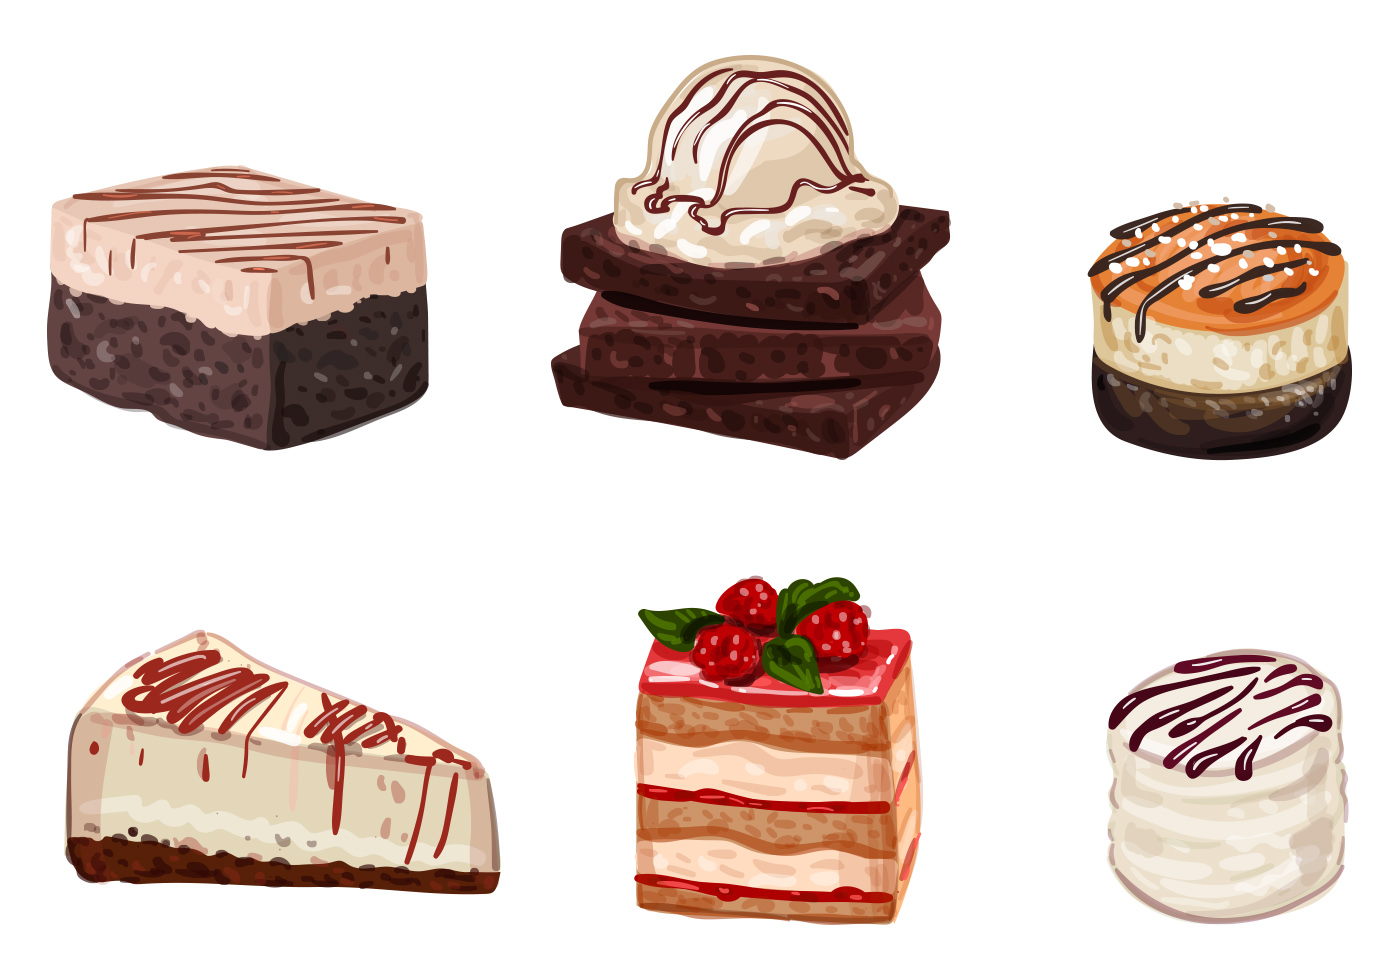 Cake and Dessert Vectors - Download Free Vector Art, Stock Graphics & Images